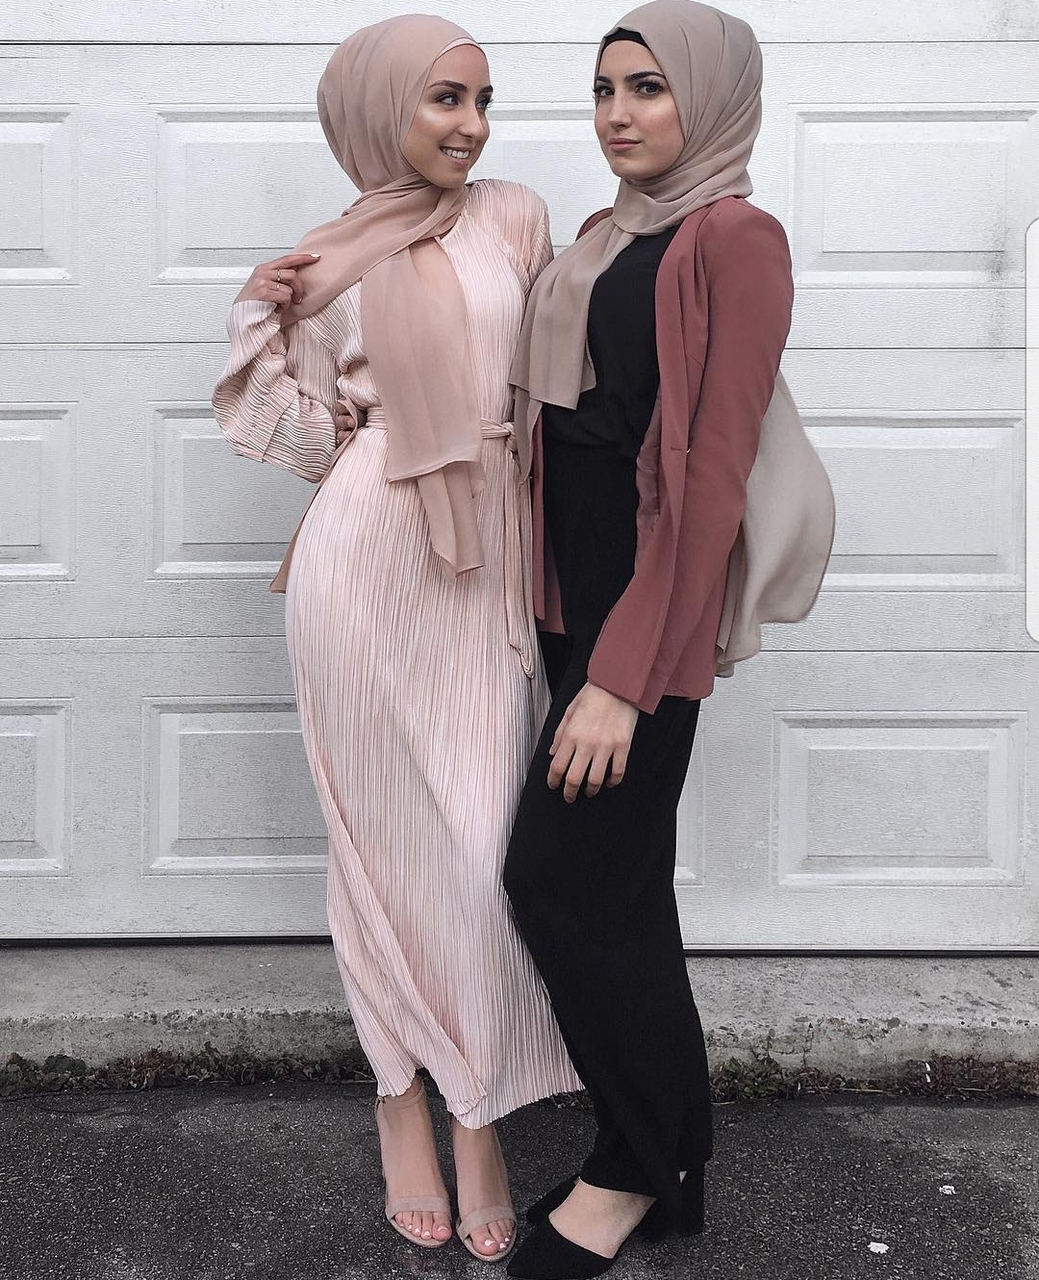 beauty, fashion, friends and hijab